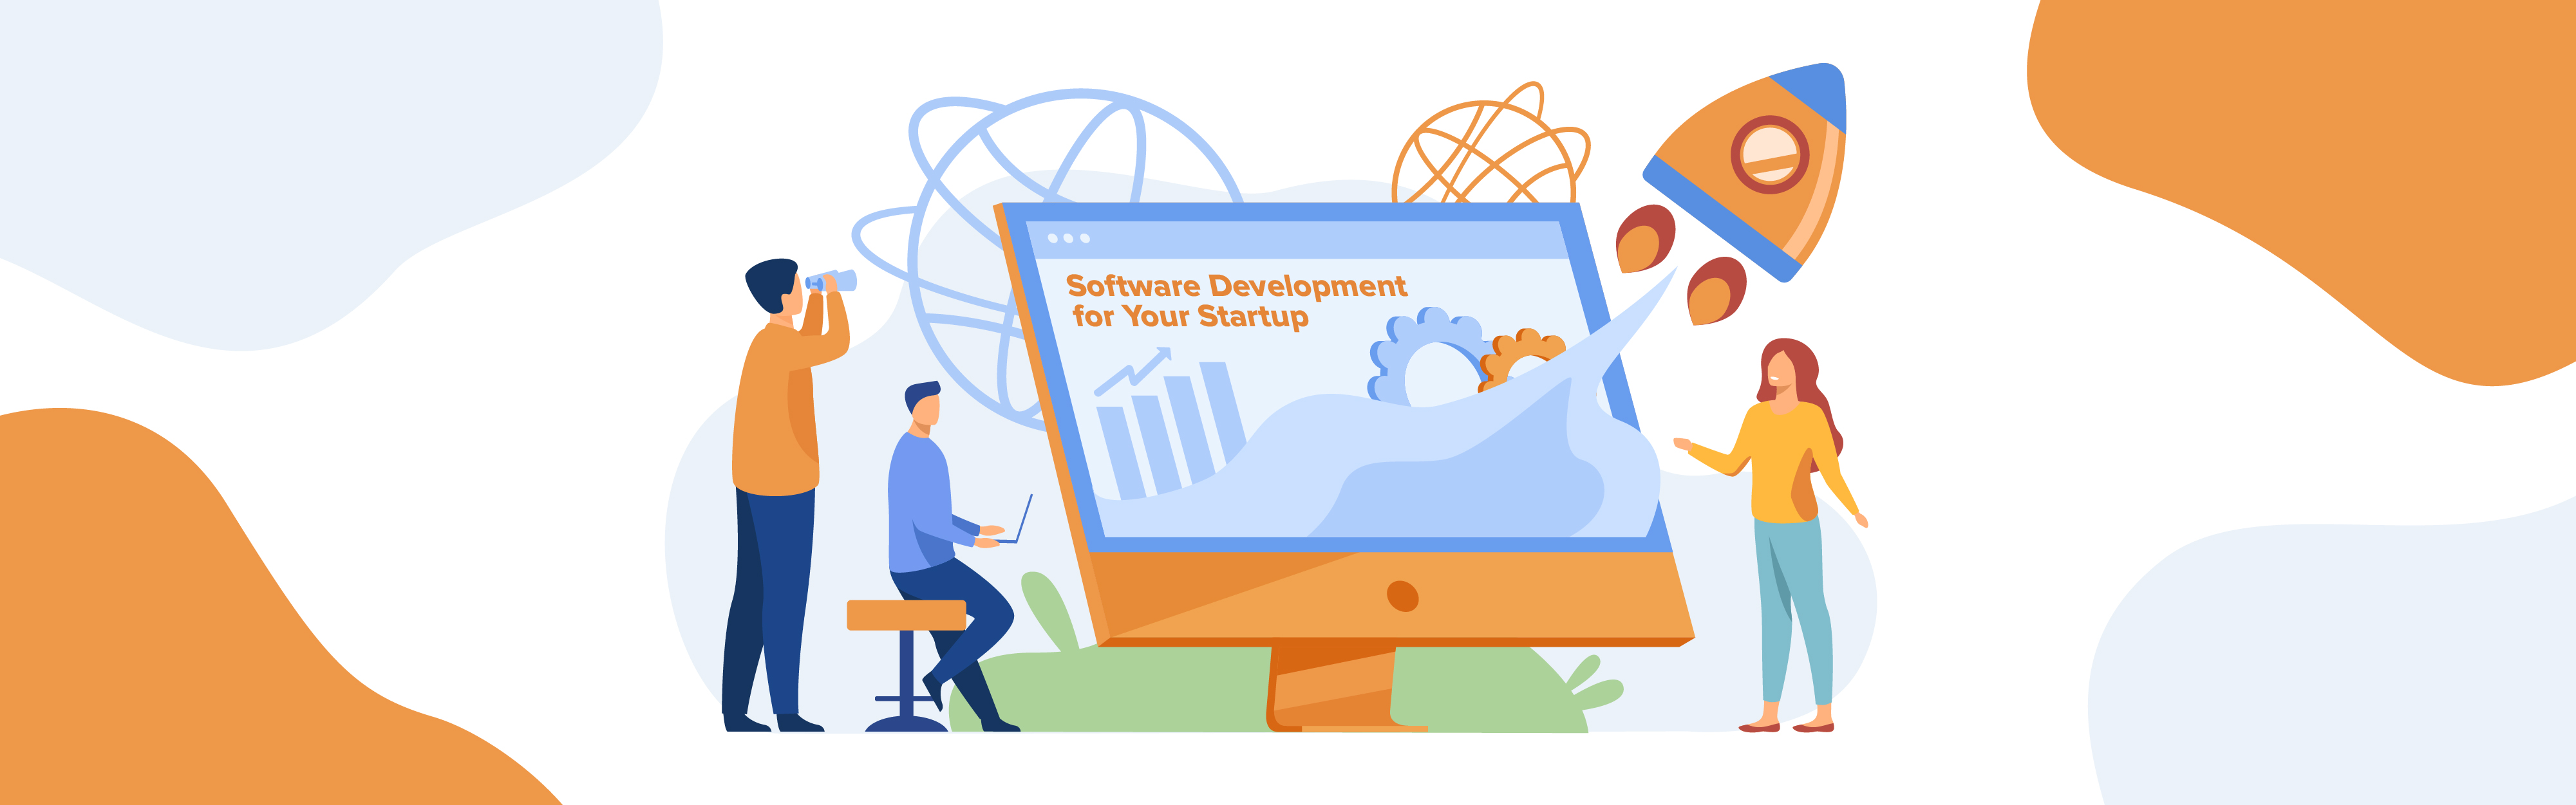 7 Things to Consider When Choosing the Best Application Development Software for Your Startup